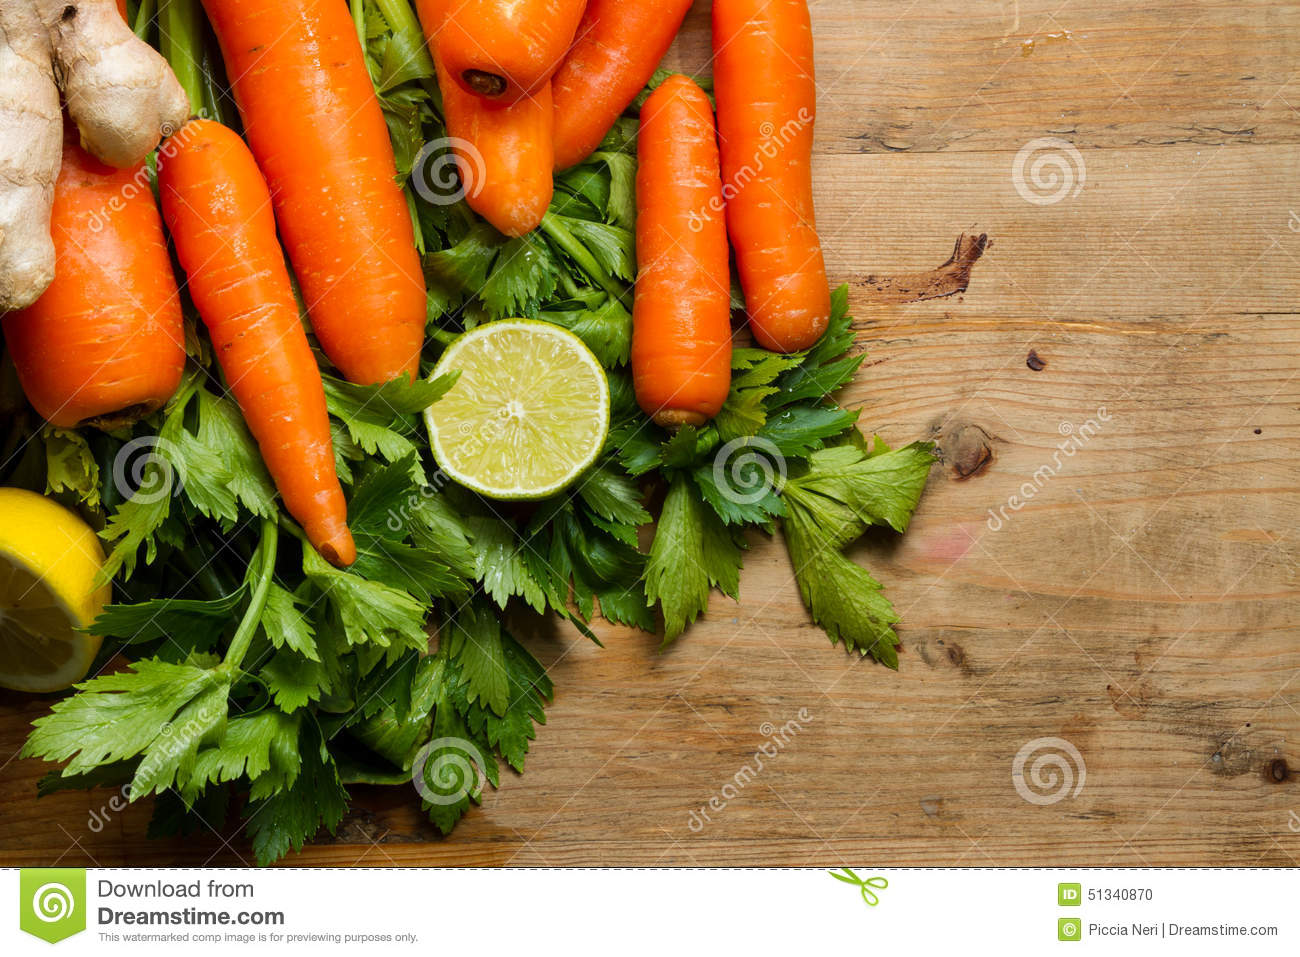 how to make carrot and celery juice